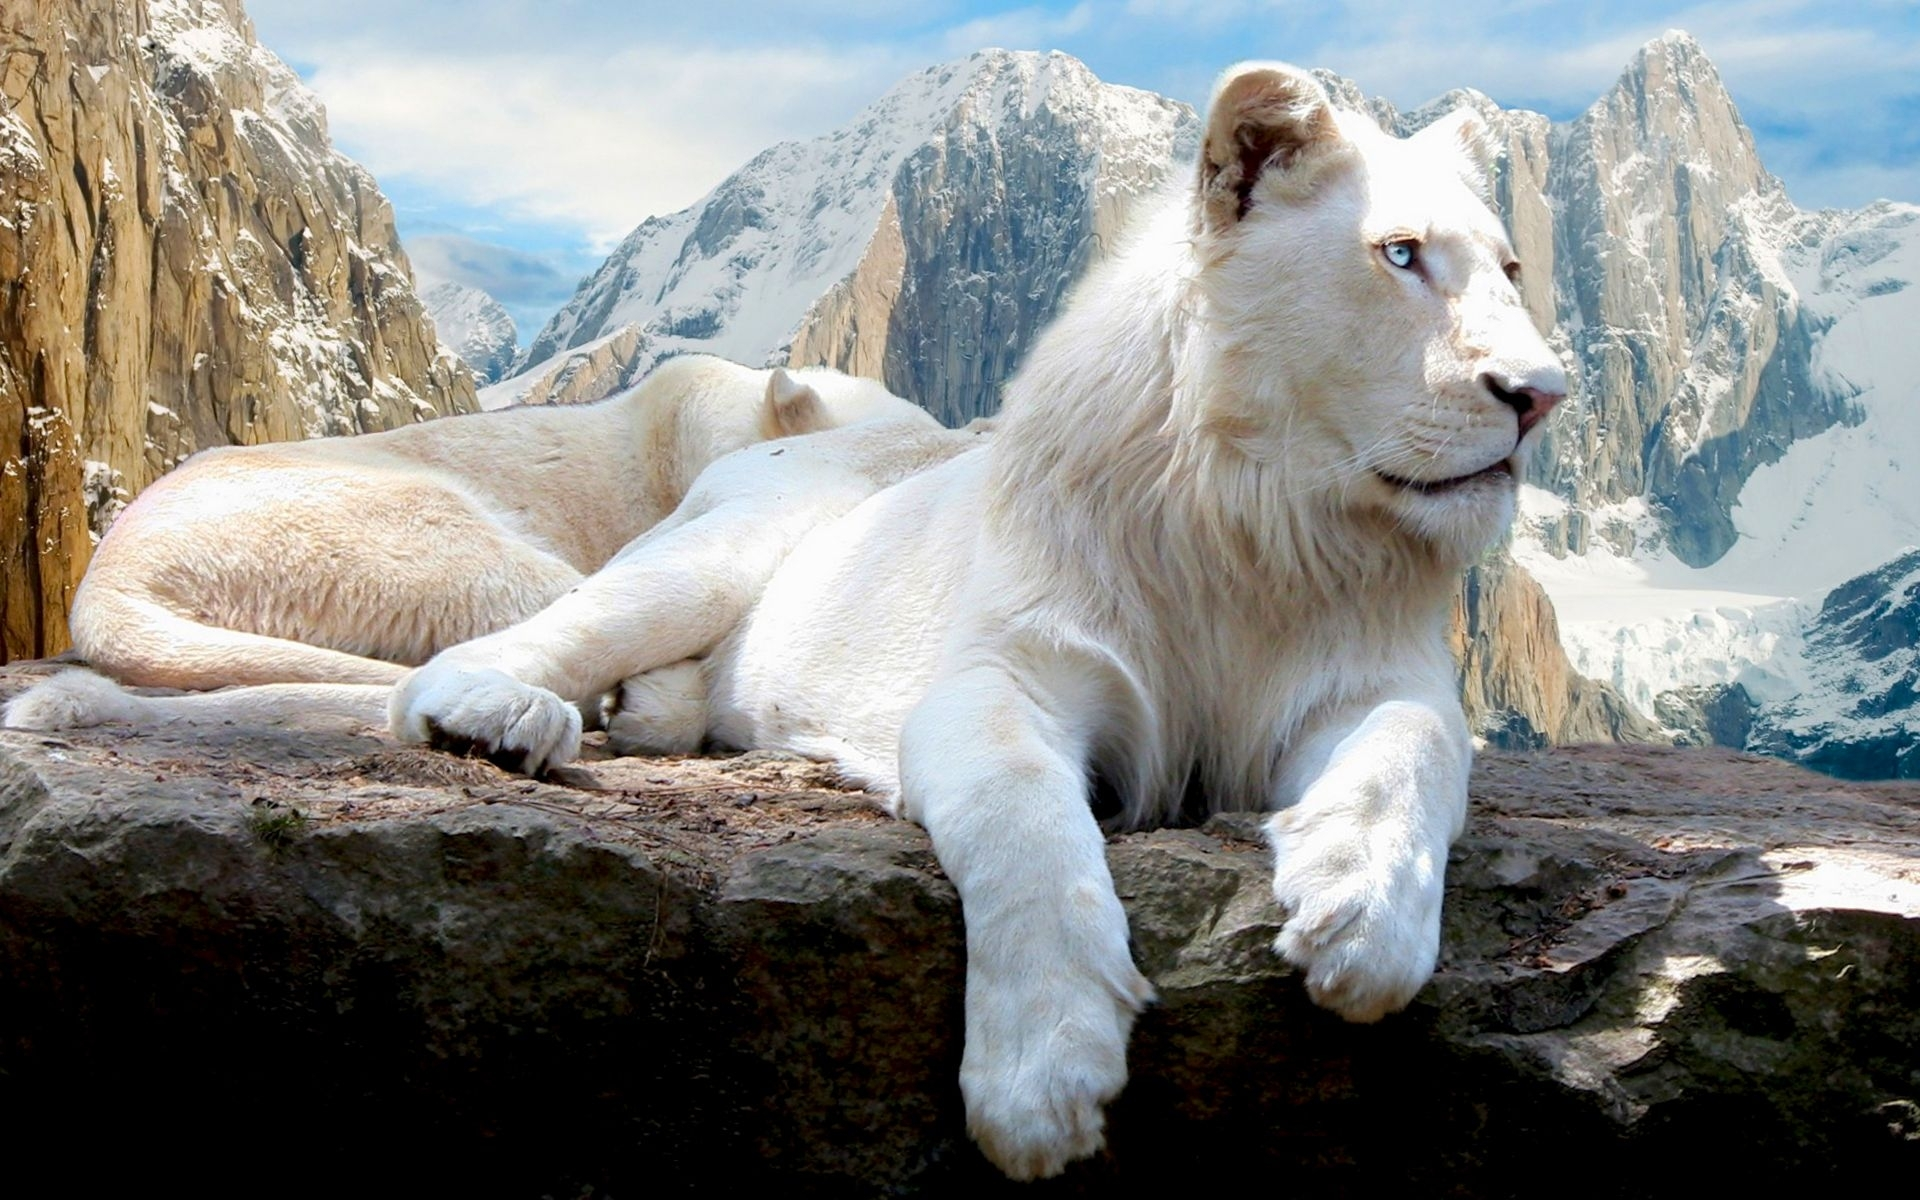 41506 download wallpaper Animals, Landscape, Mountains, Lions screensavers and pictures for free